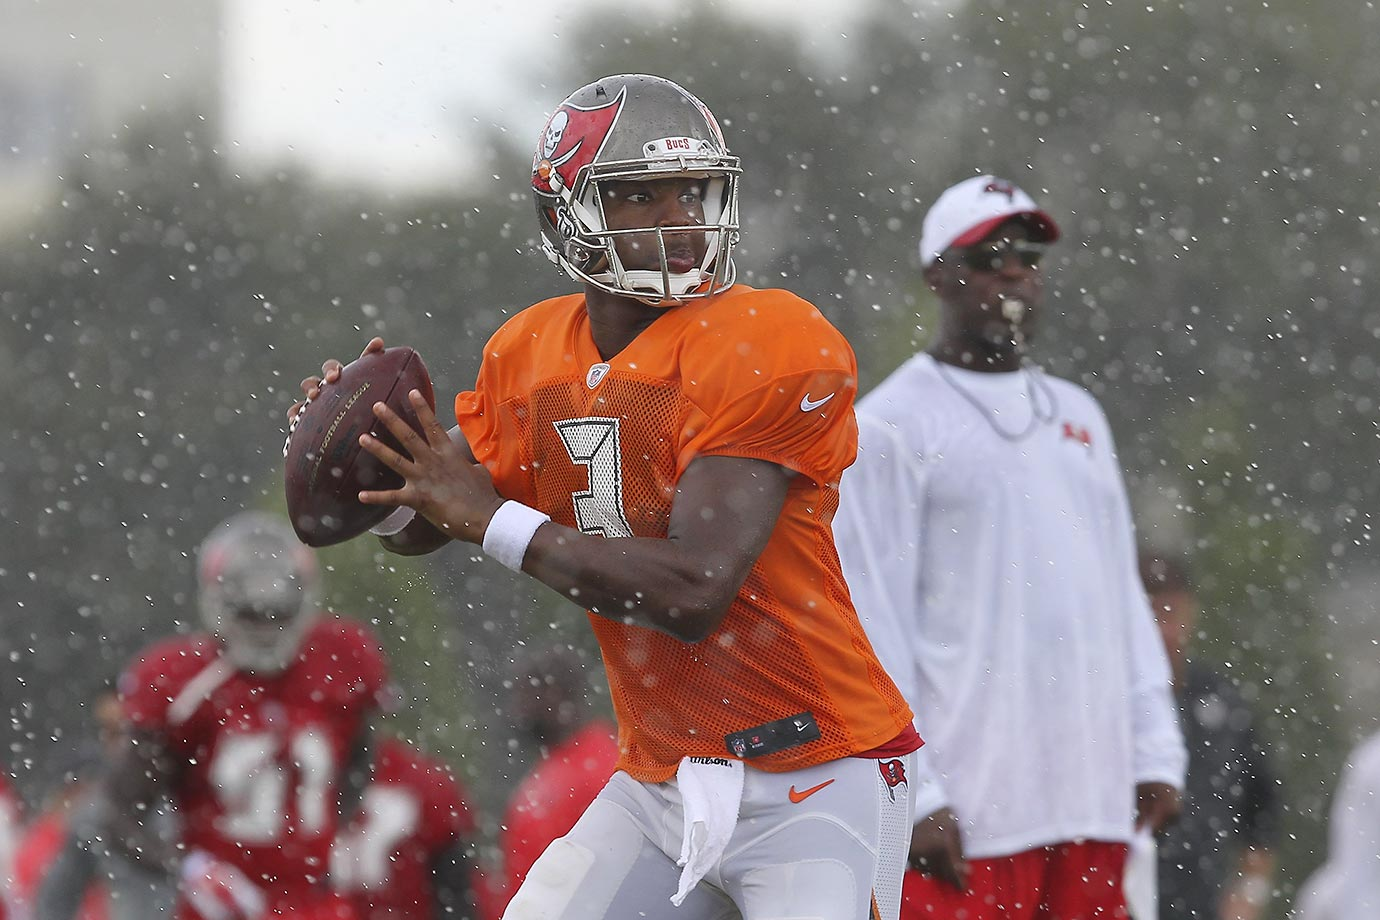 Tampa Bay quarterback Jameis Winston drops back to pass in the pouring rain during a Buccaneers training camp workout in Tampa.